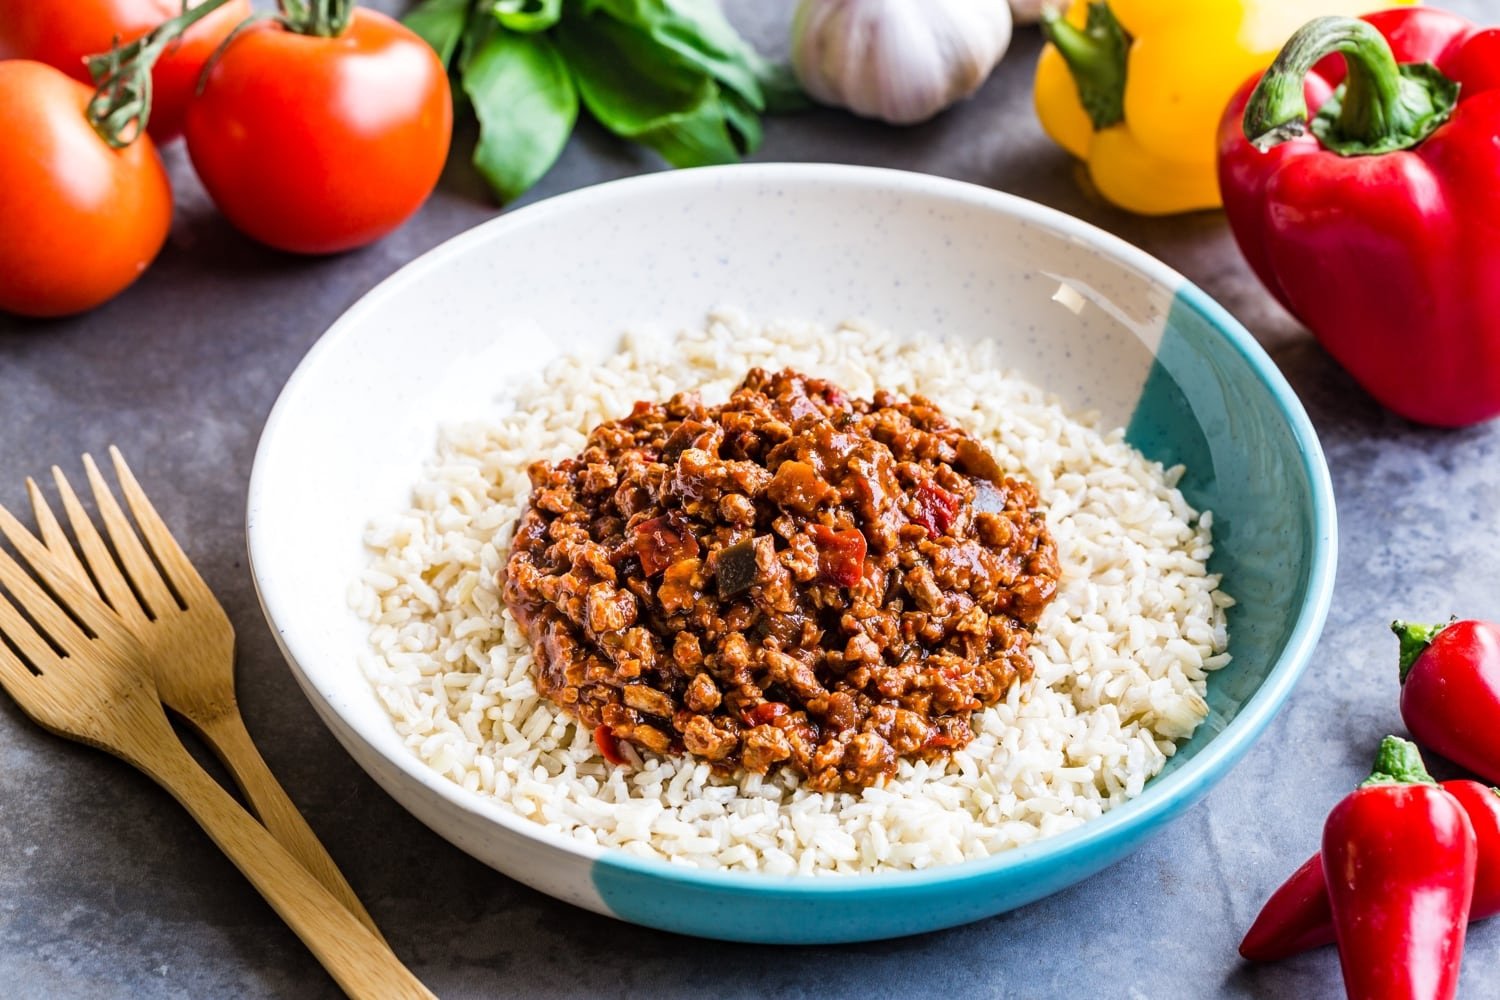 Anglia Crown's Soya Minced Chilli and Wholegrain Carbs